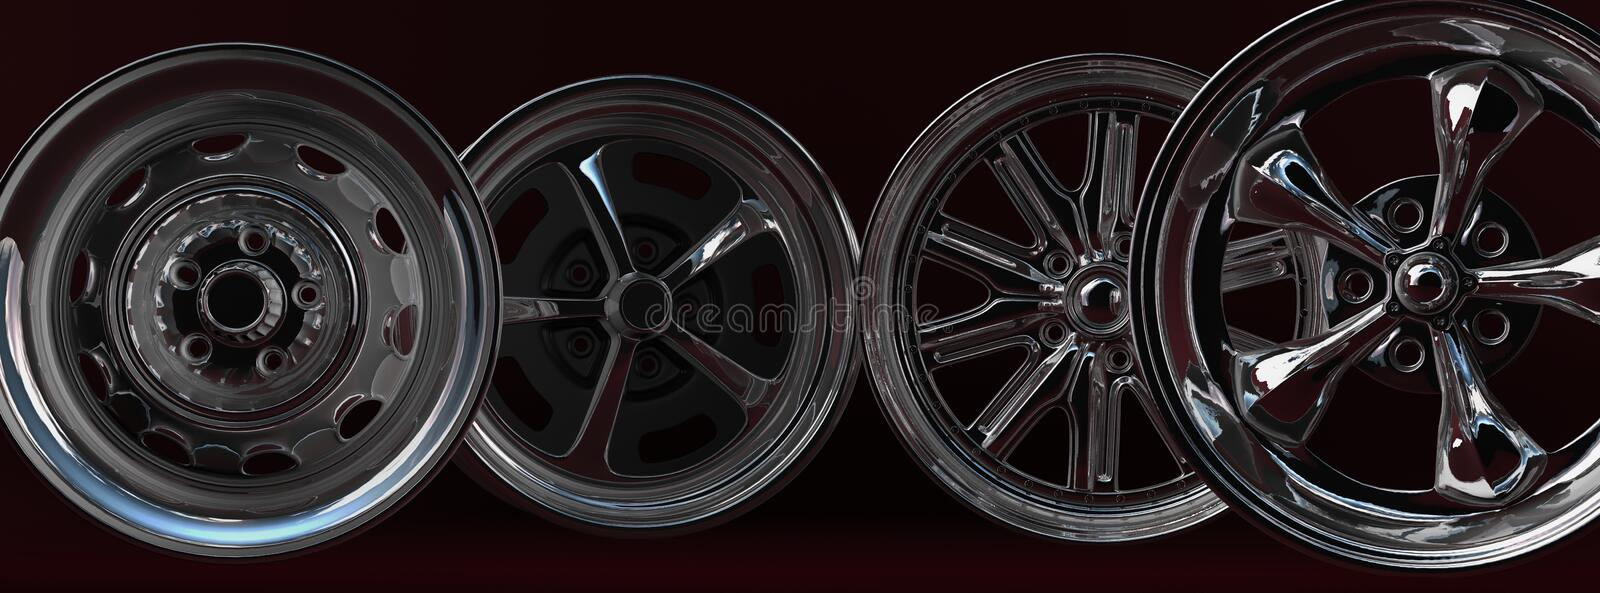 Car rims. Steel car rims on the dark red background royalty free illustration